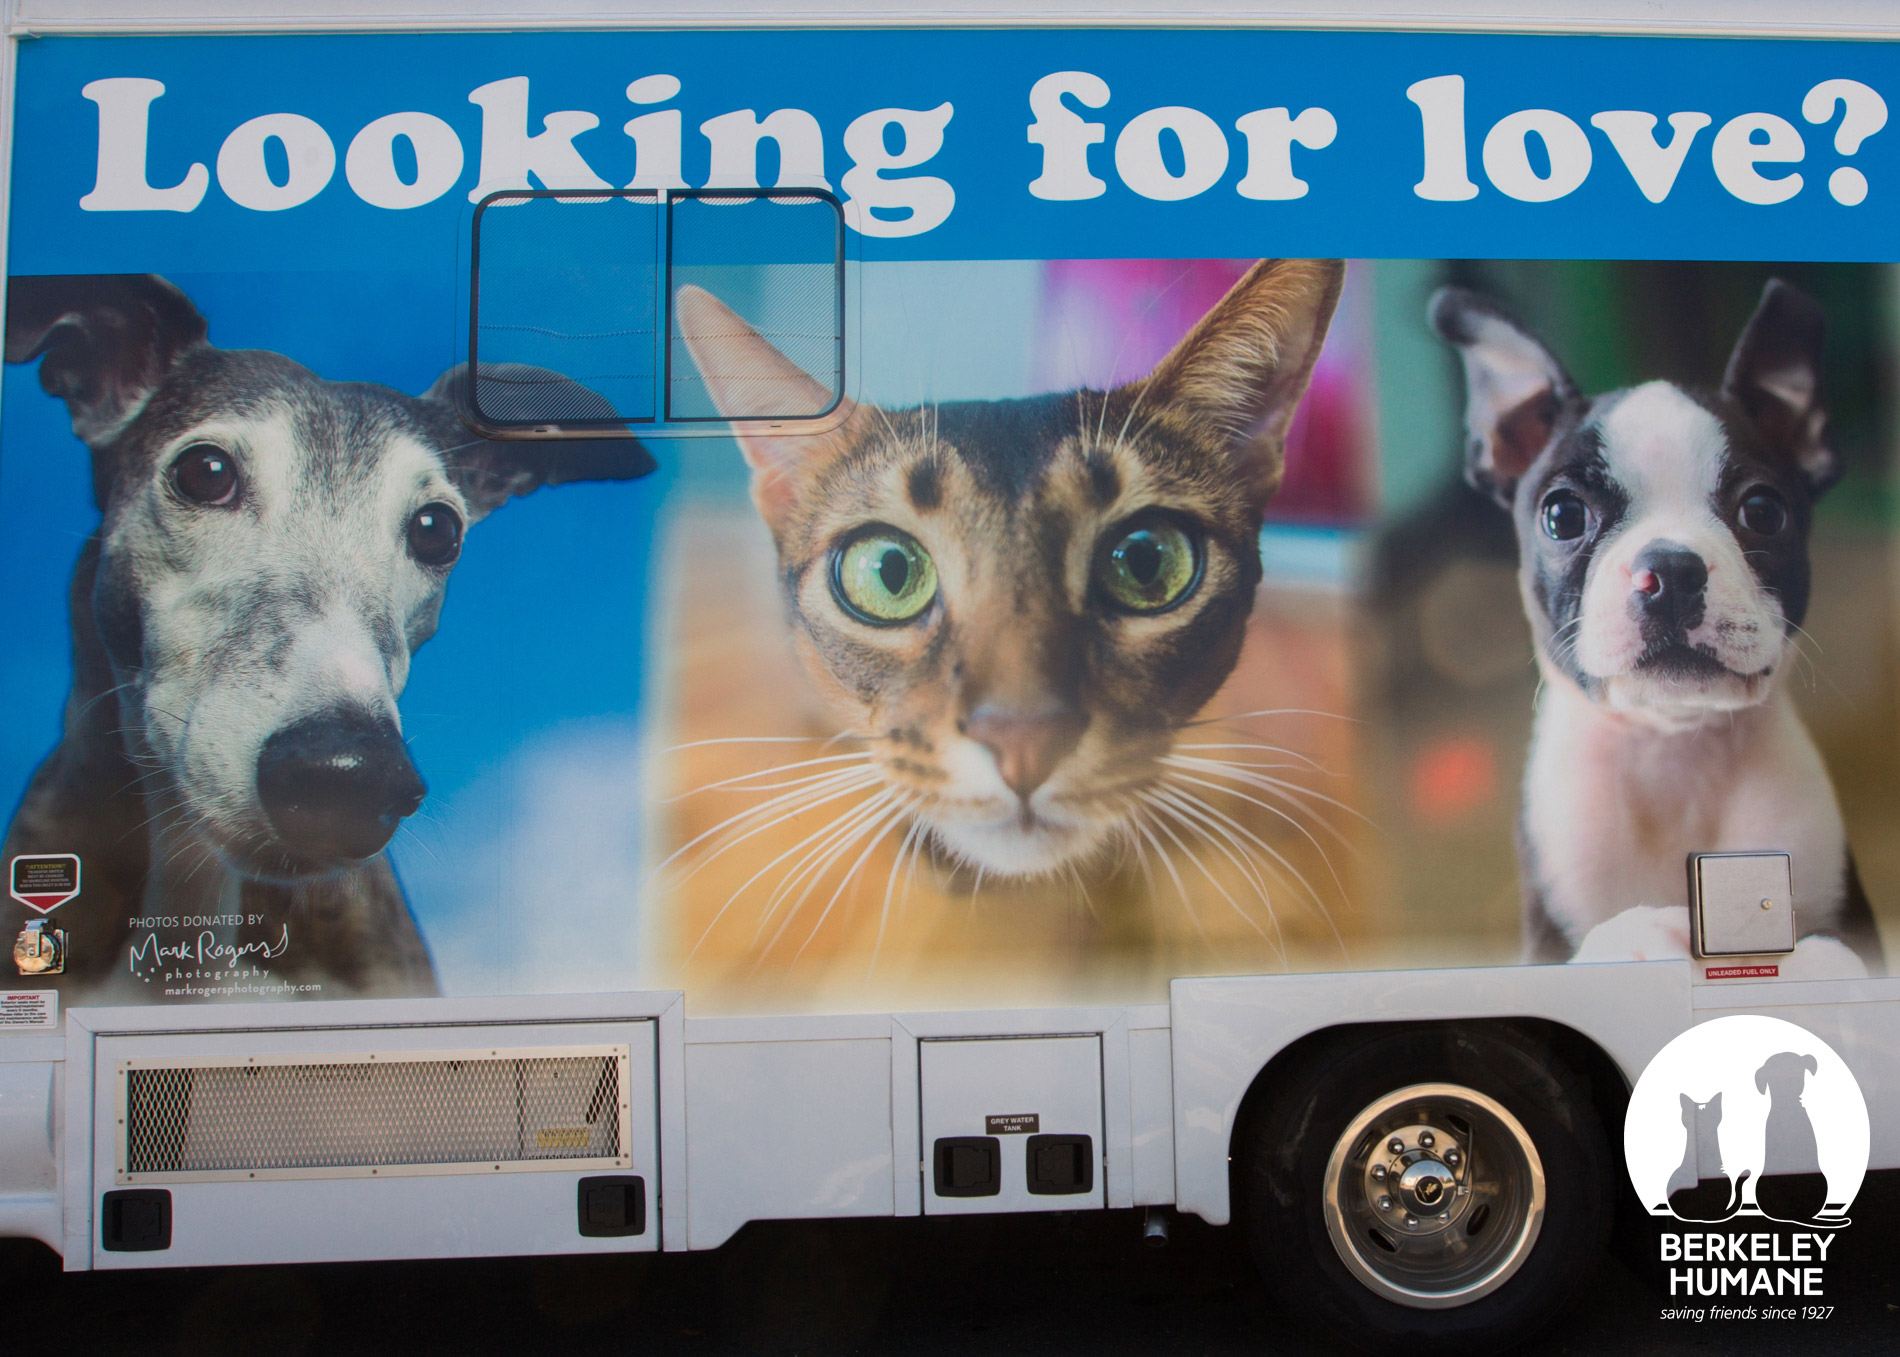 Commissioned Photography | Berkeley Humane Van by Mark Rogers